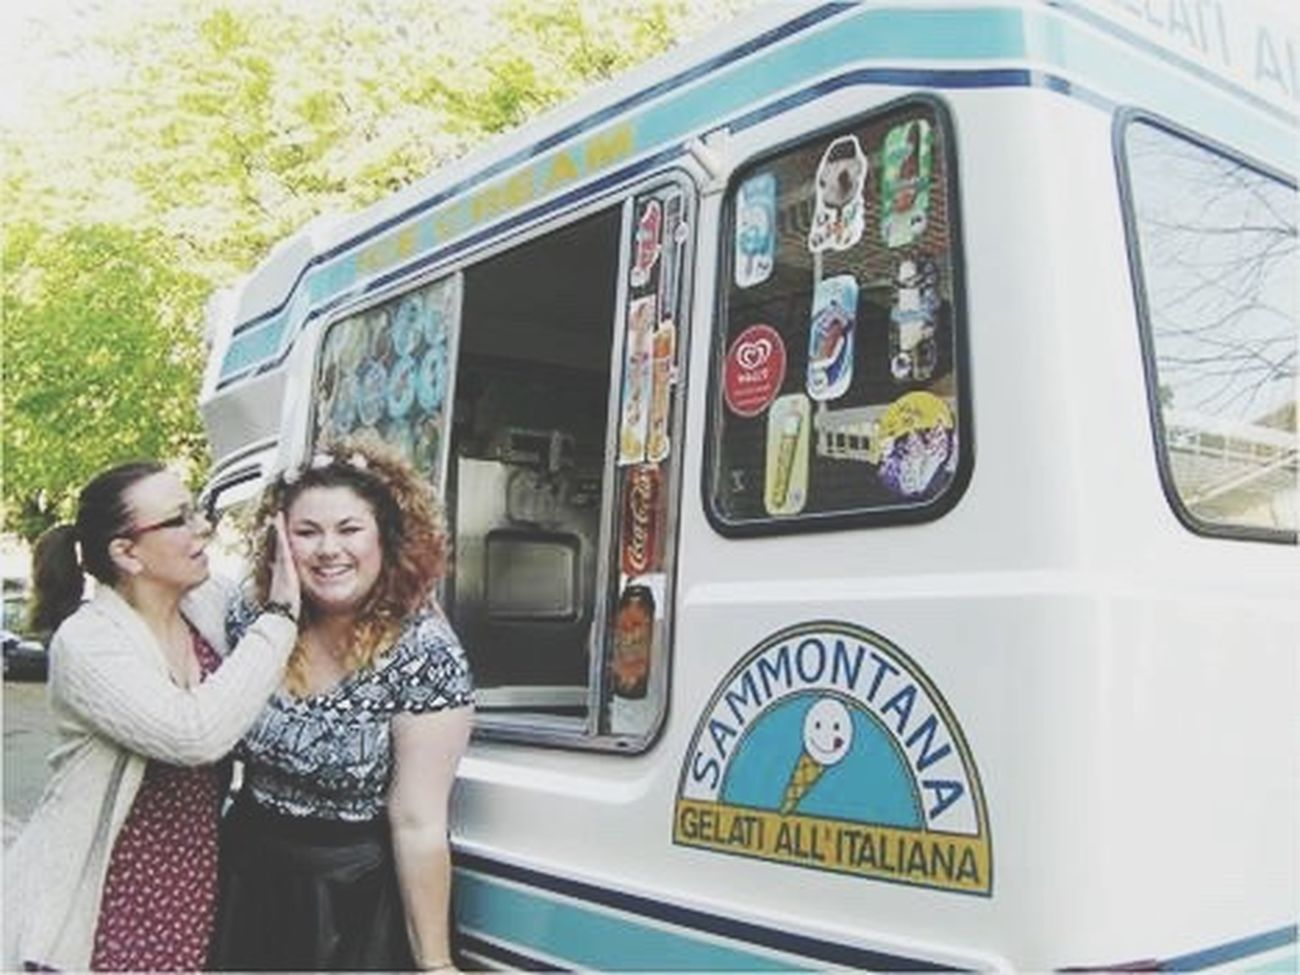 That was a cool birthday Birthday Ice Cream Truck Icecreamvan Ice Cream Van